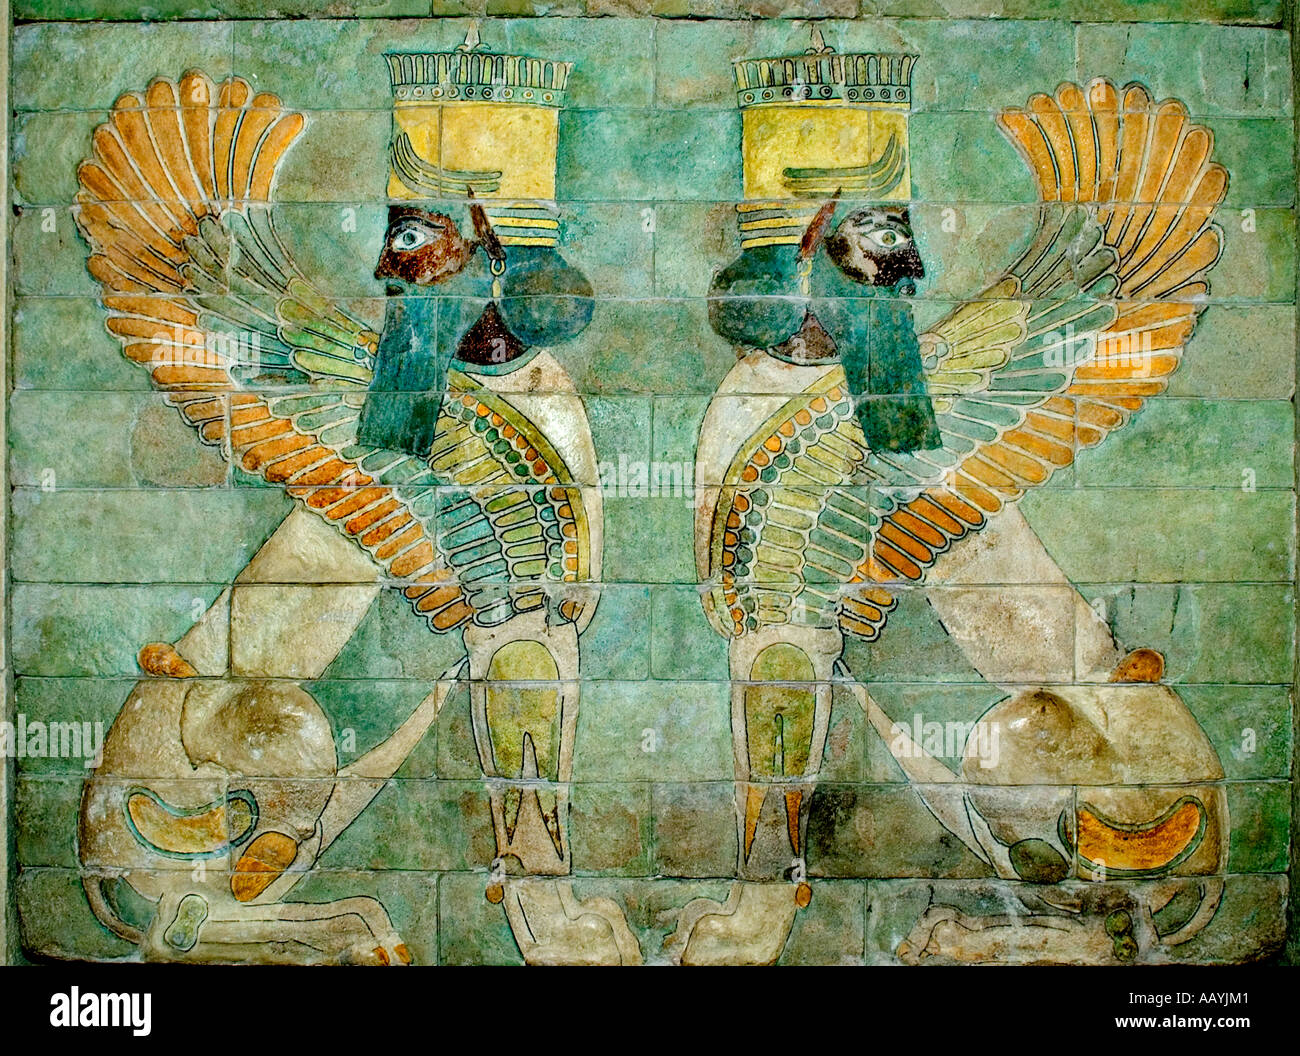 Persian frieze from the Palace of Darius the Great in Susa - Stock Image